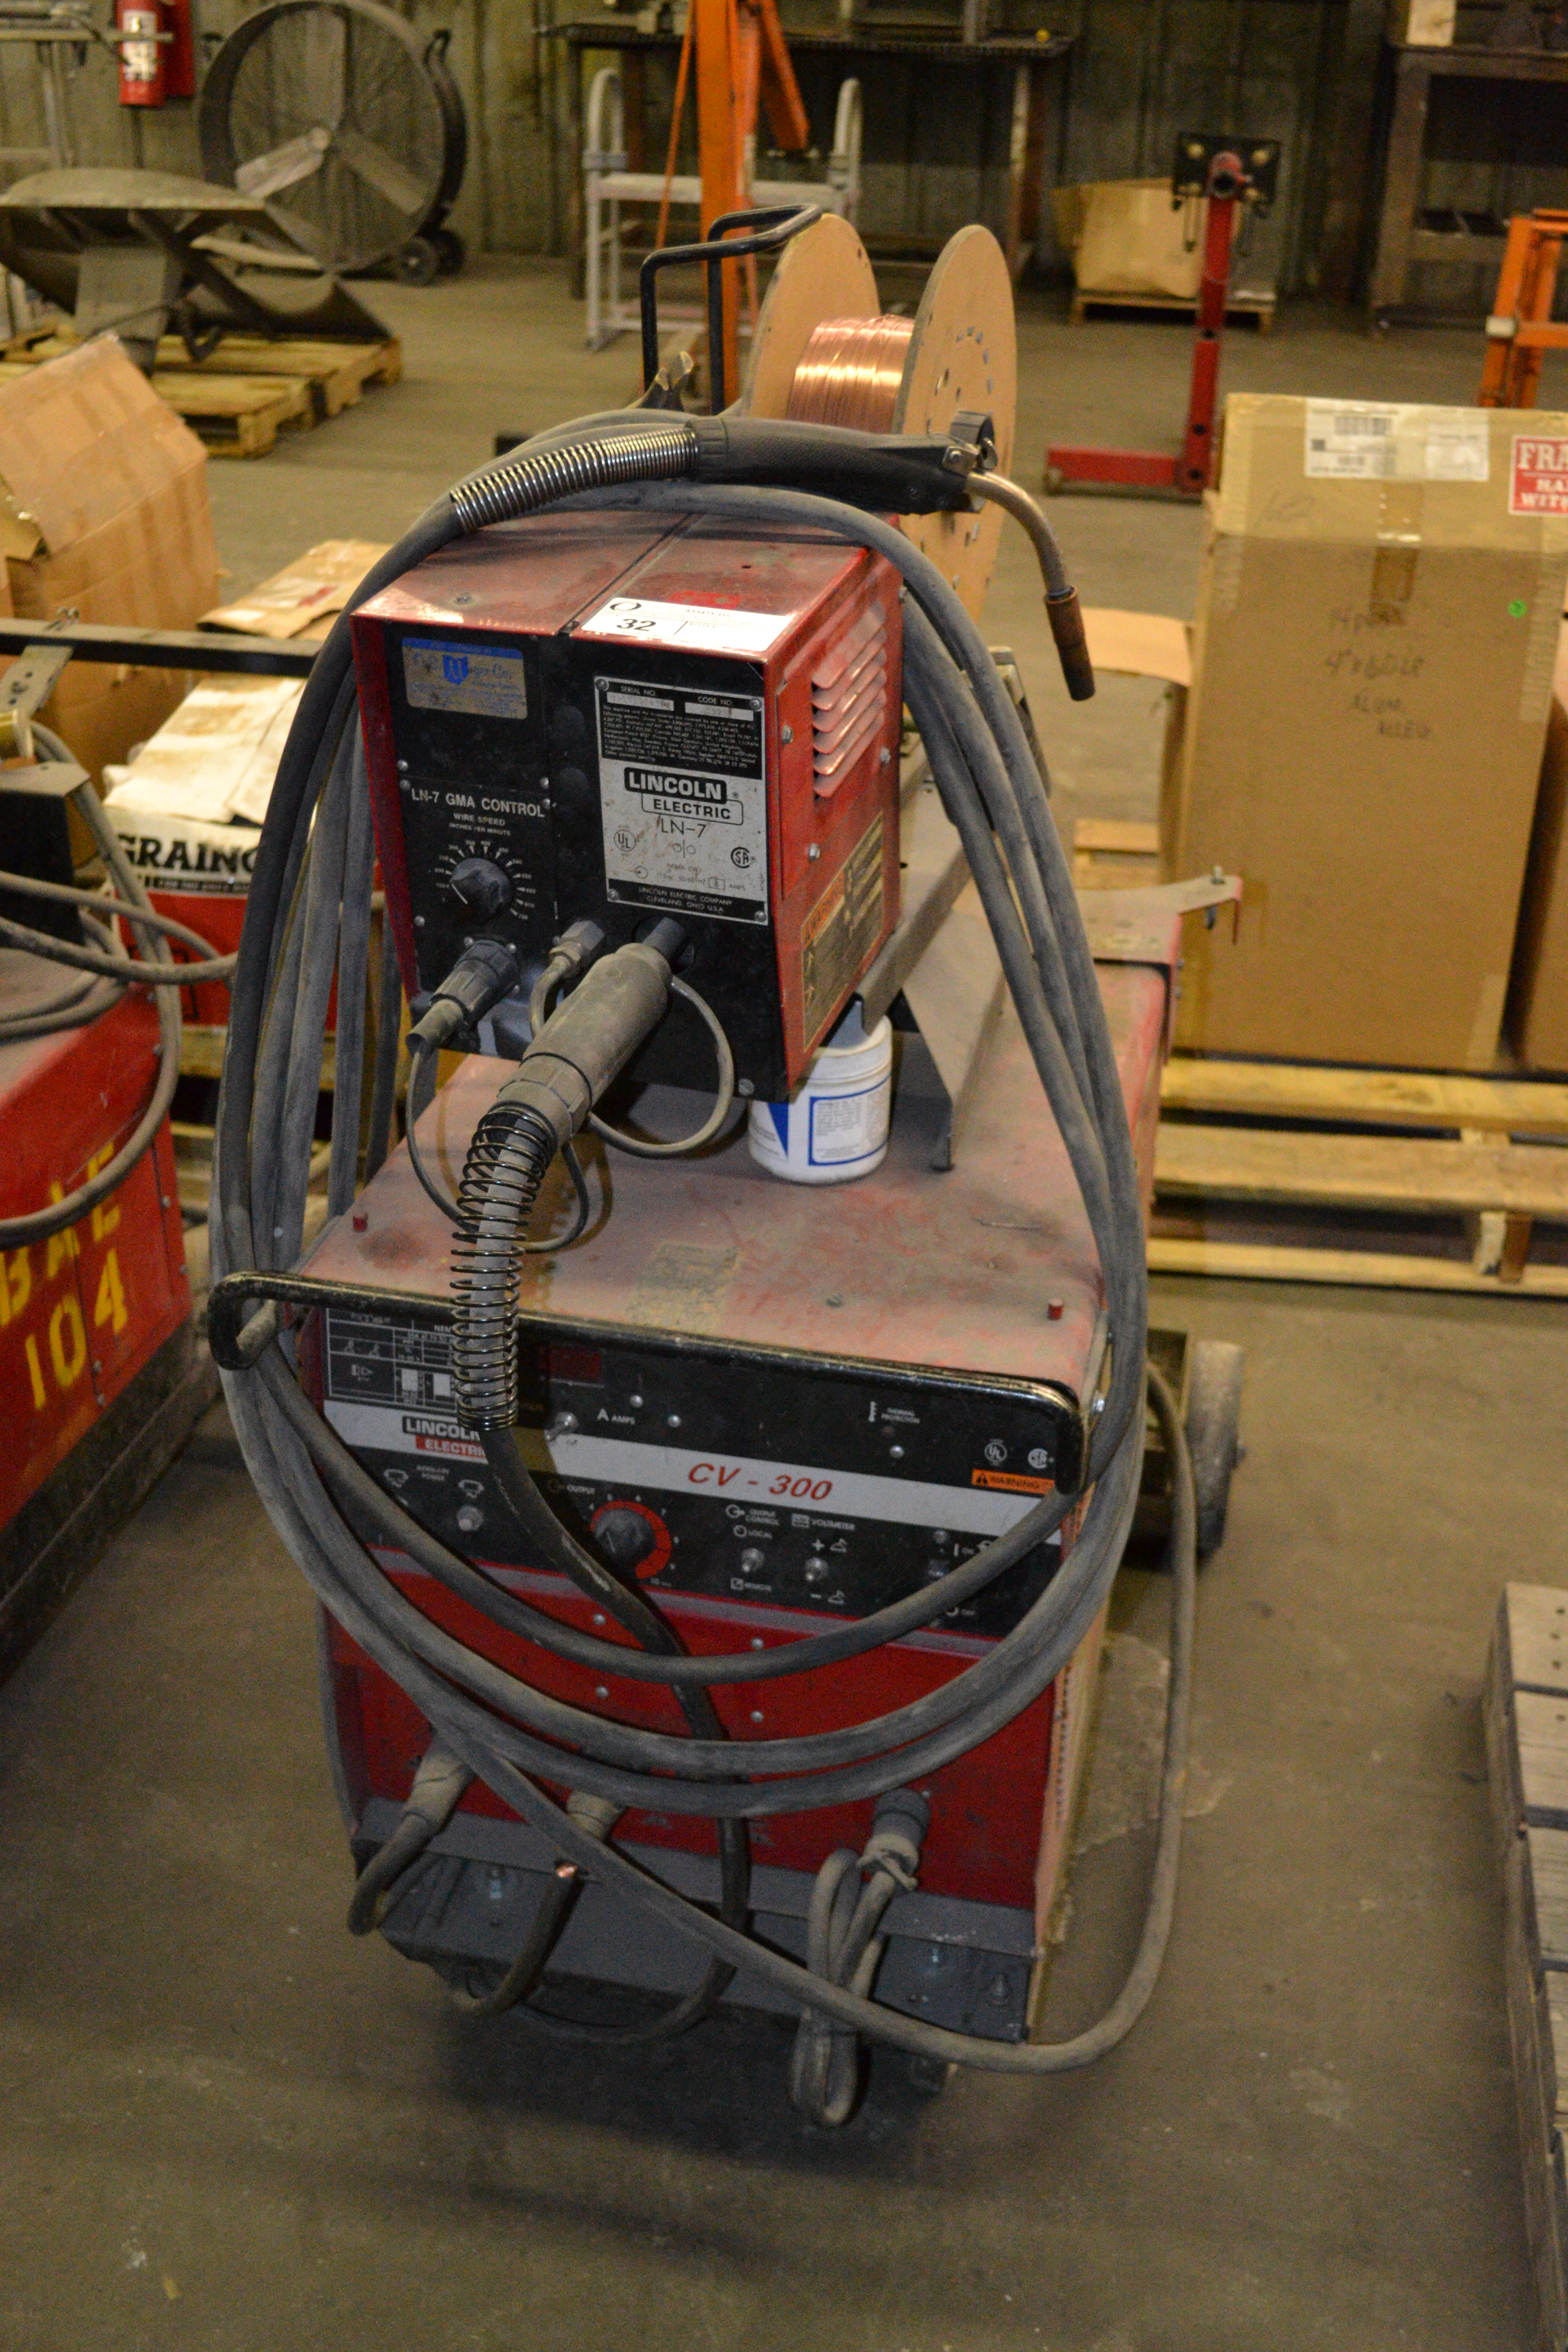 Lot 32 - Lincoln CV-300 welder, with Lincoln LN-7 wire feeder  SN: H1950908138